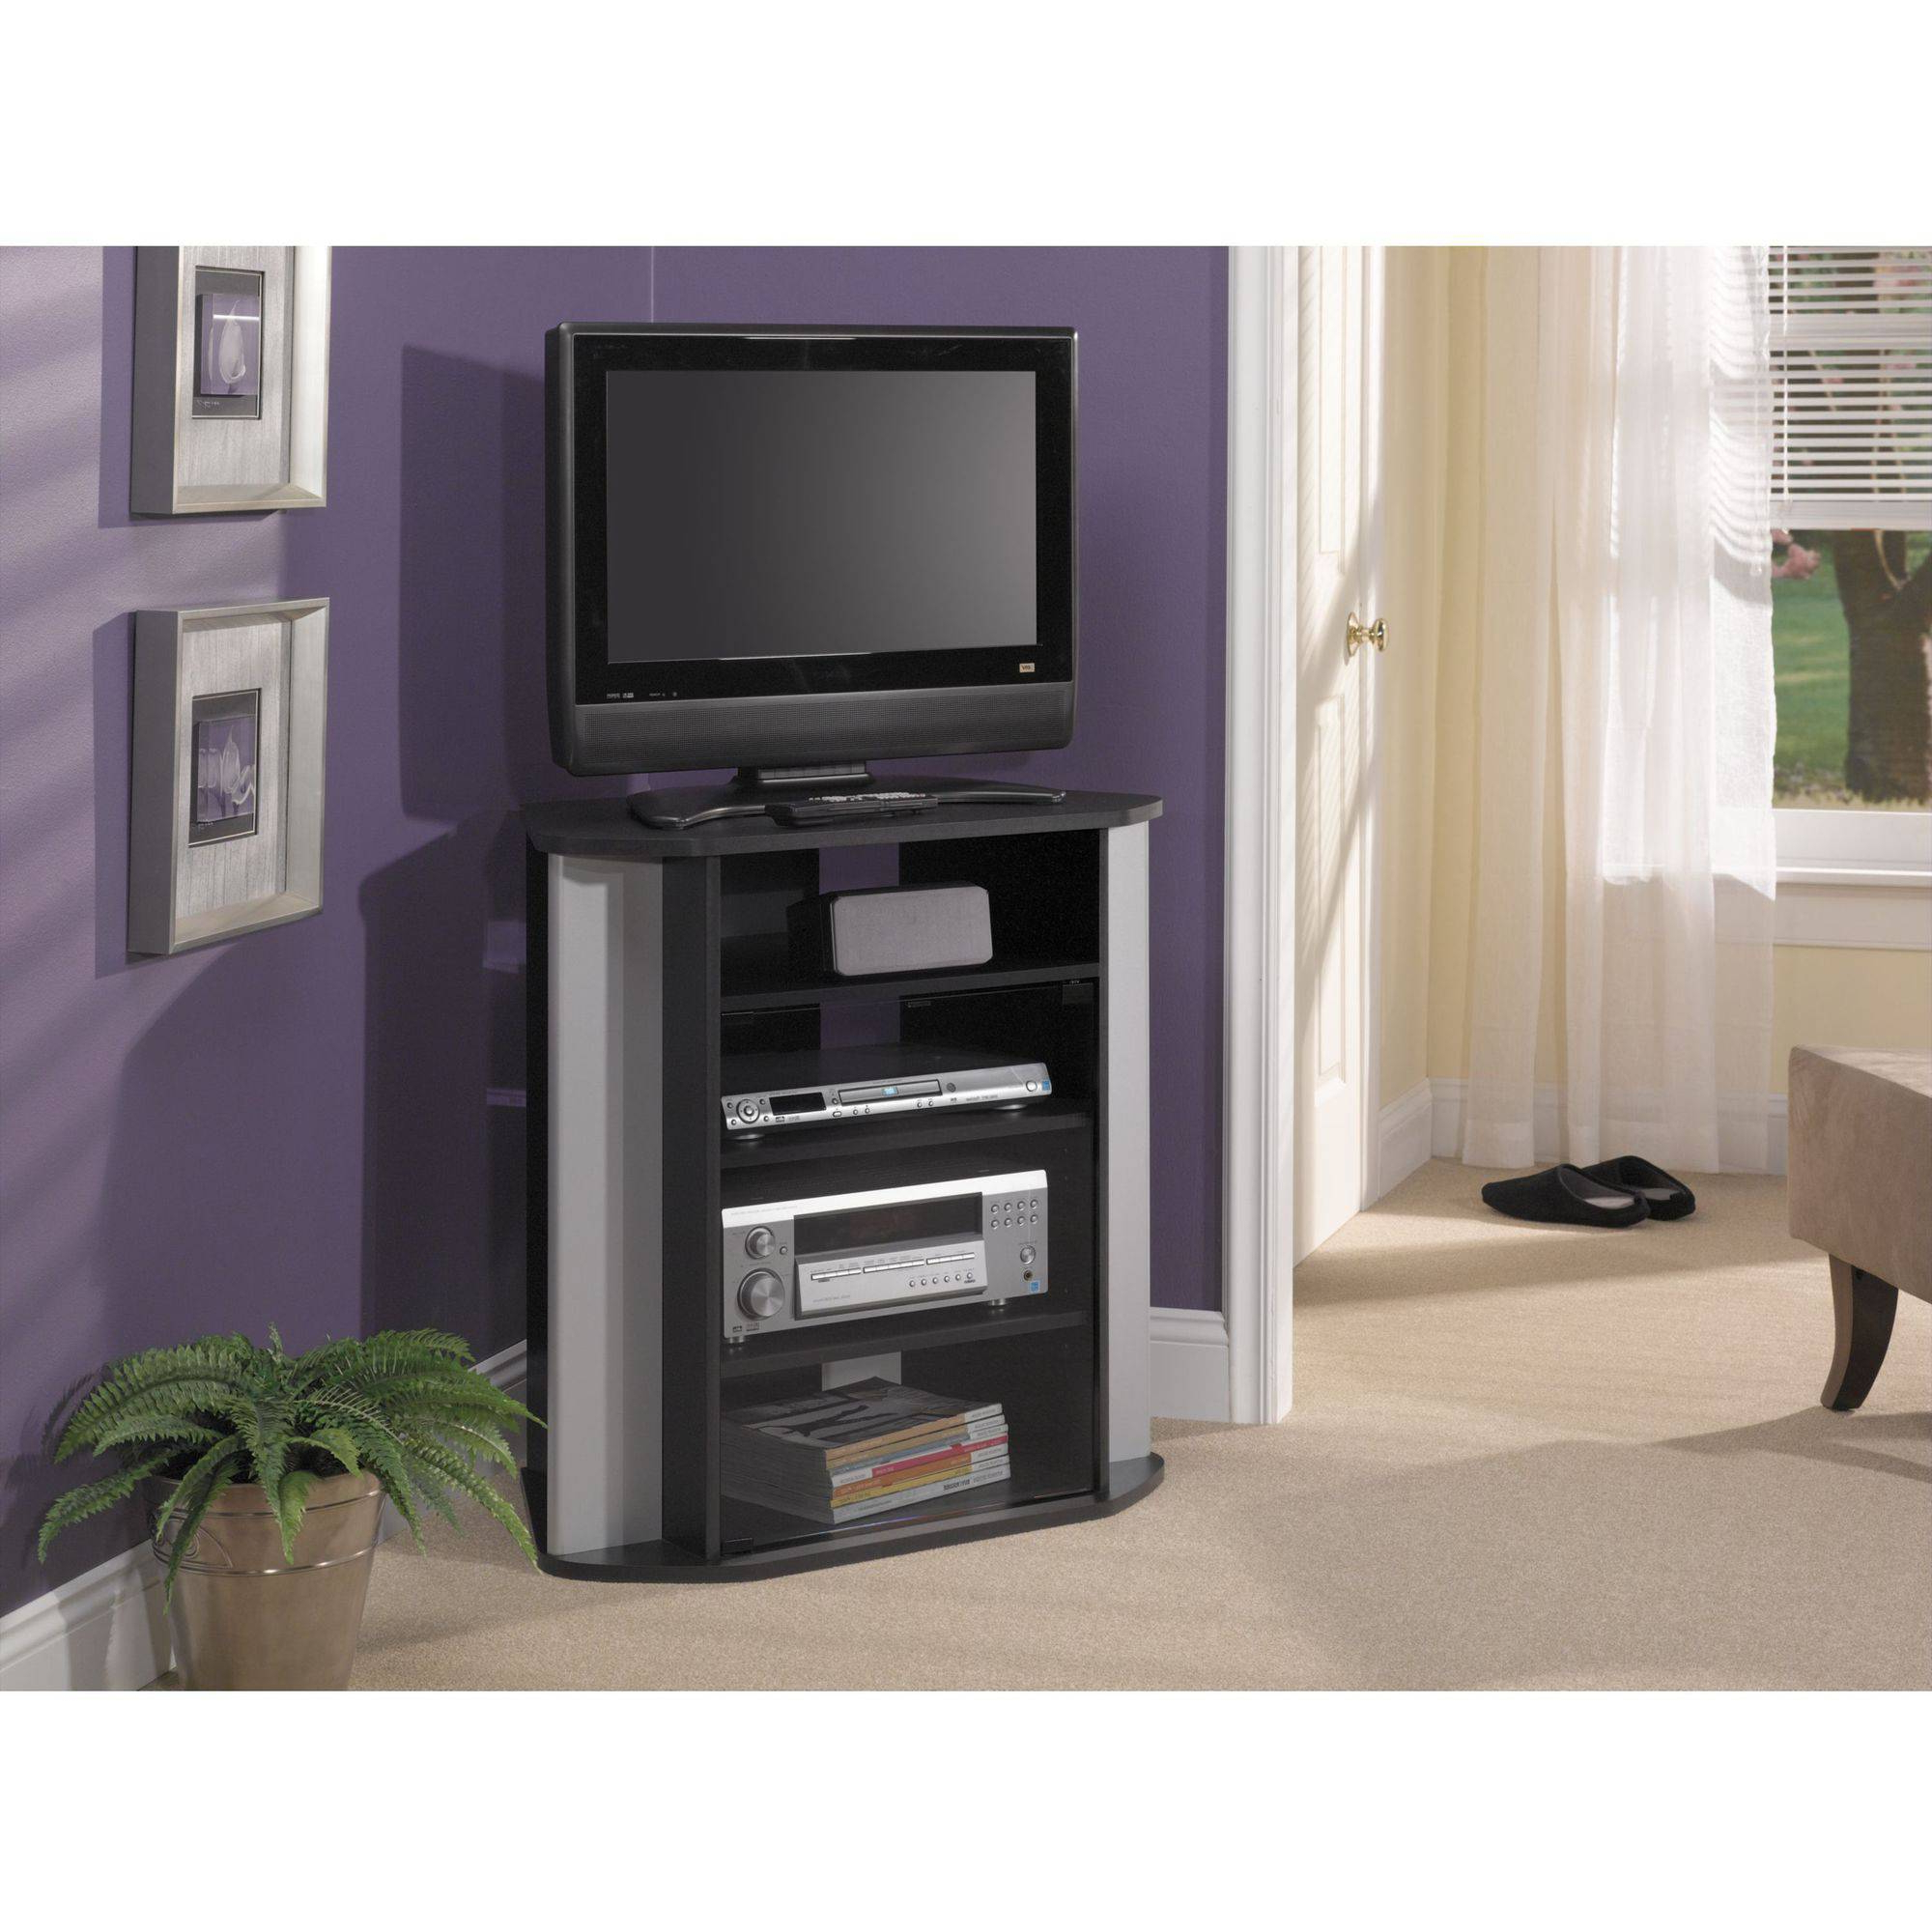 Bush Furniture Visions Tall Corner Tv Stand In Black And Metallic For Most Current Black Corner Tv Cabinets With Glass Doors (View 12 of 20)